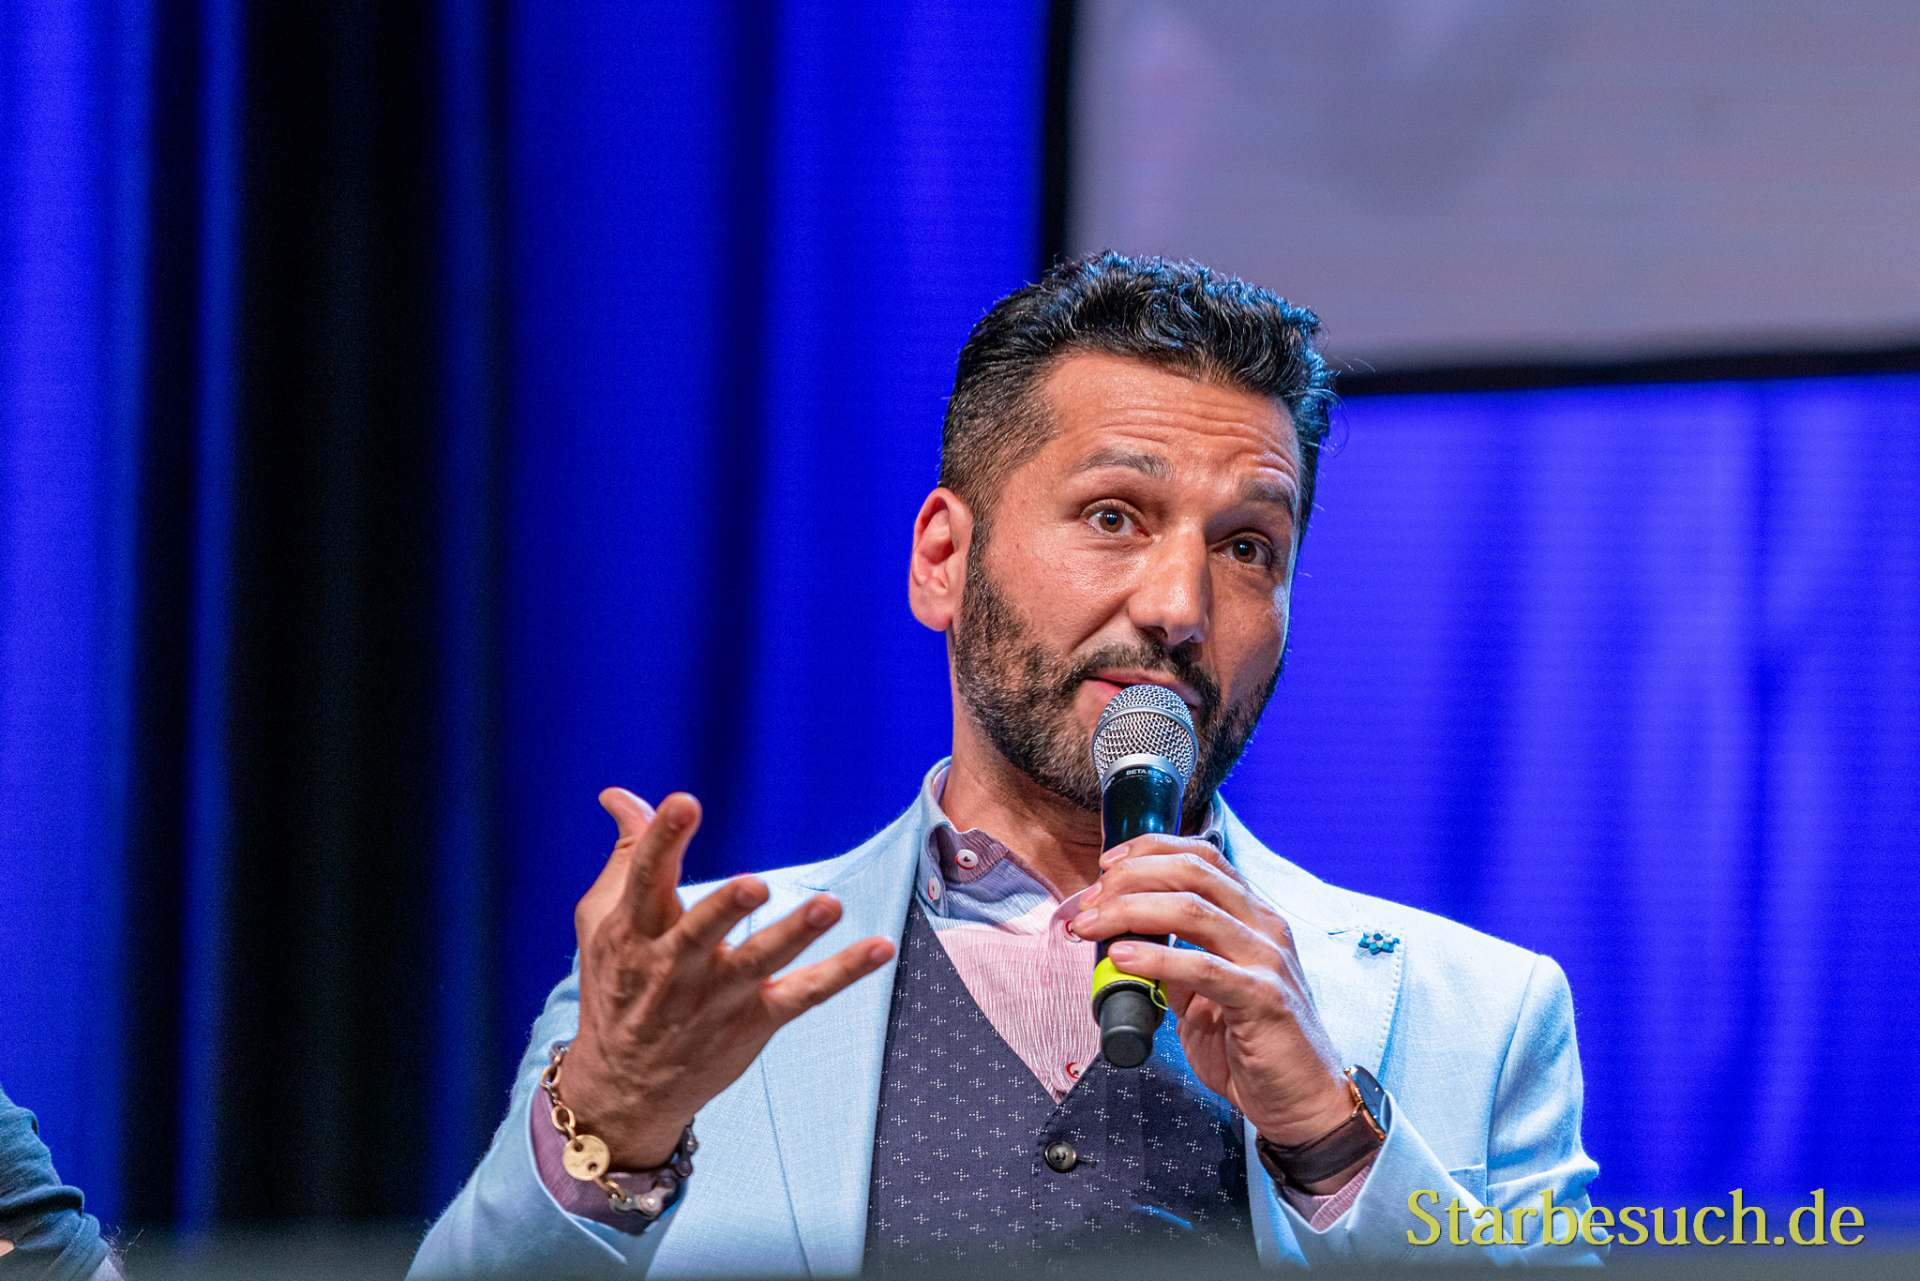 Bonn, Germany - June 8 2019: Cas Anvar (Canadian actor - The Expanse) talks about his experiences in The Expanse at FedCon 28, a four day sci-fi convention. FedCon 28 took place Jun 7-10 2019.